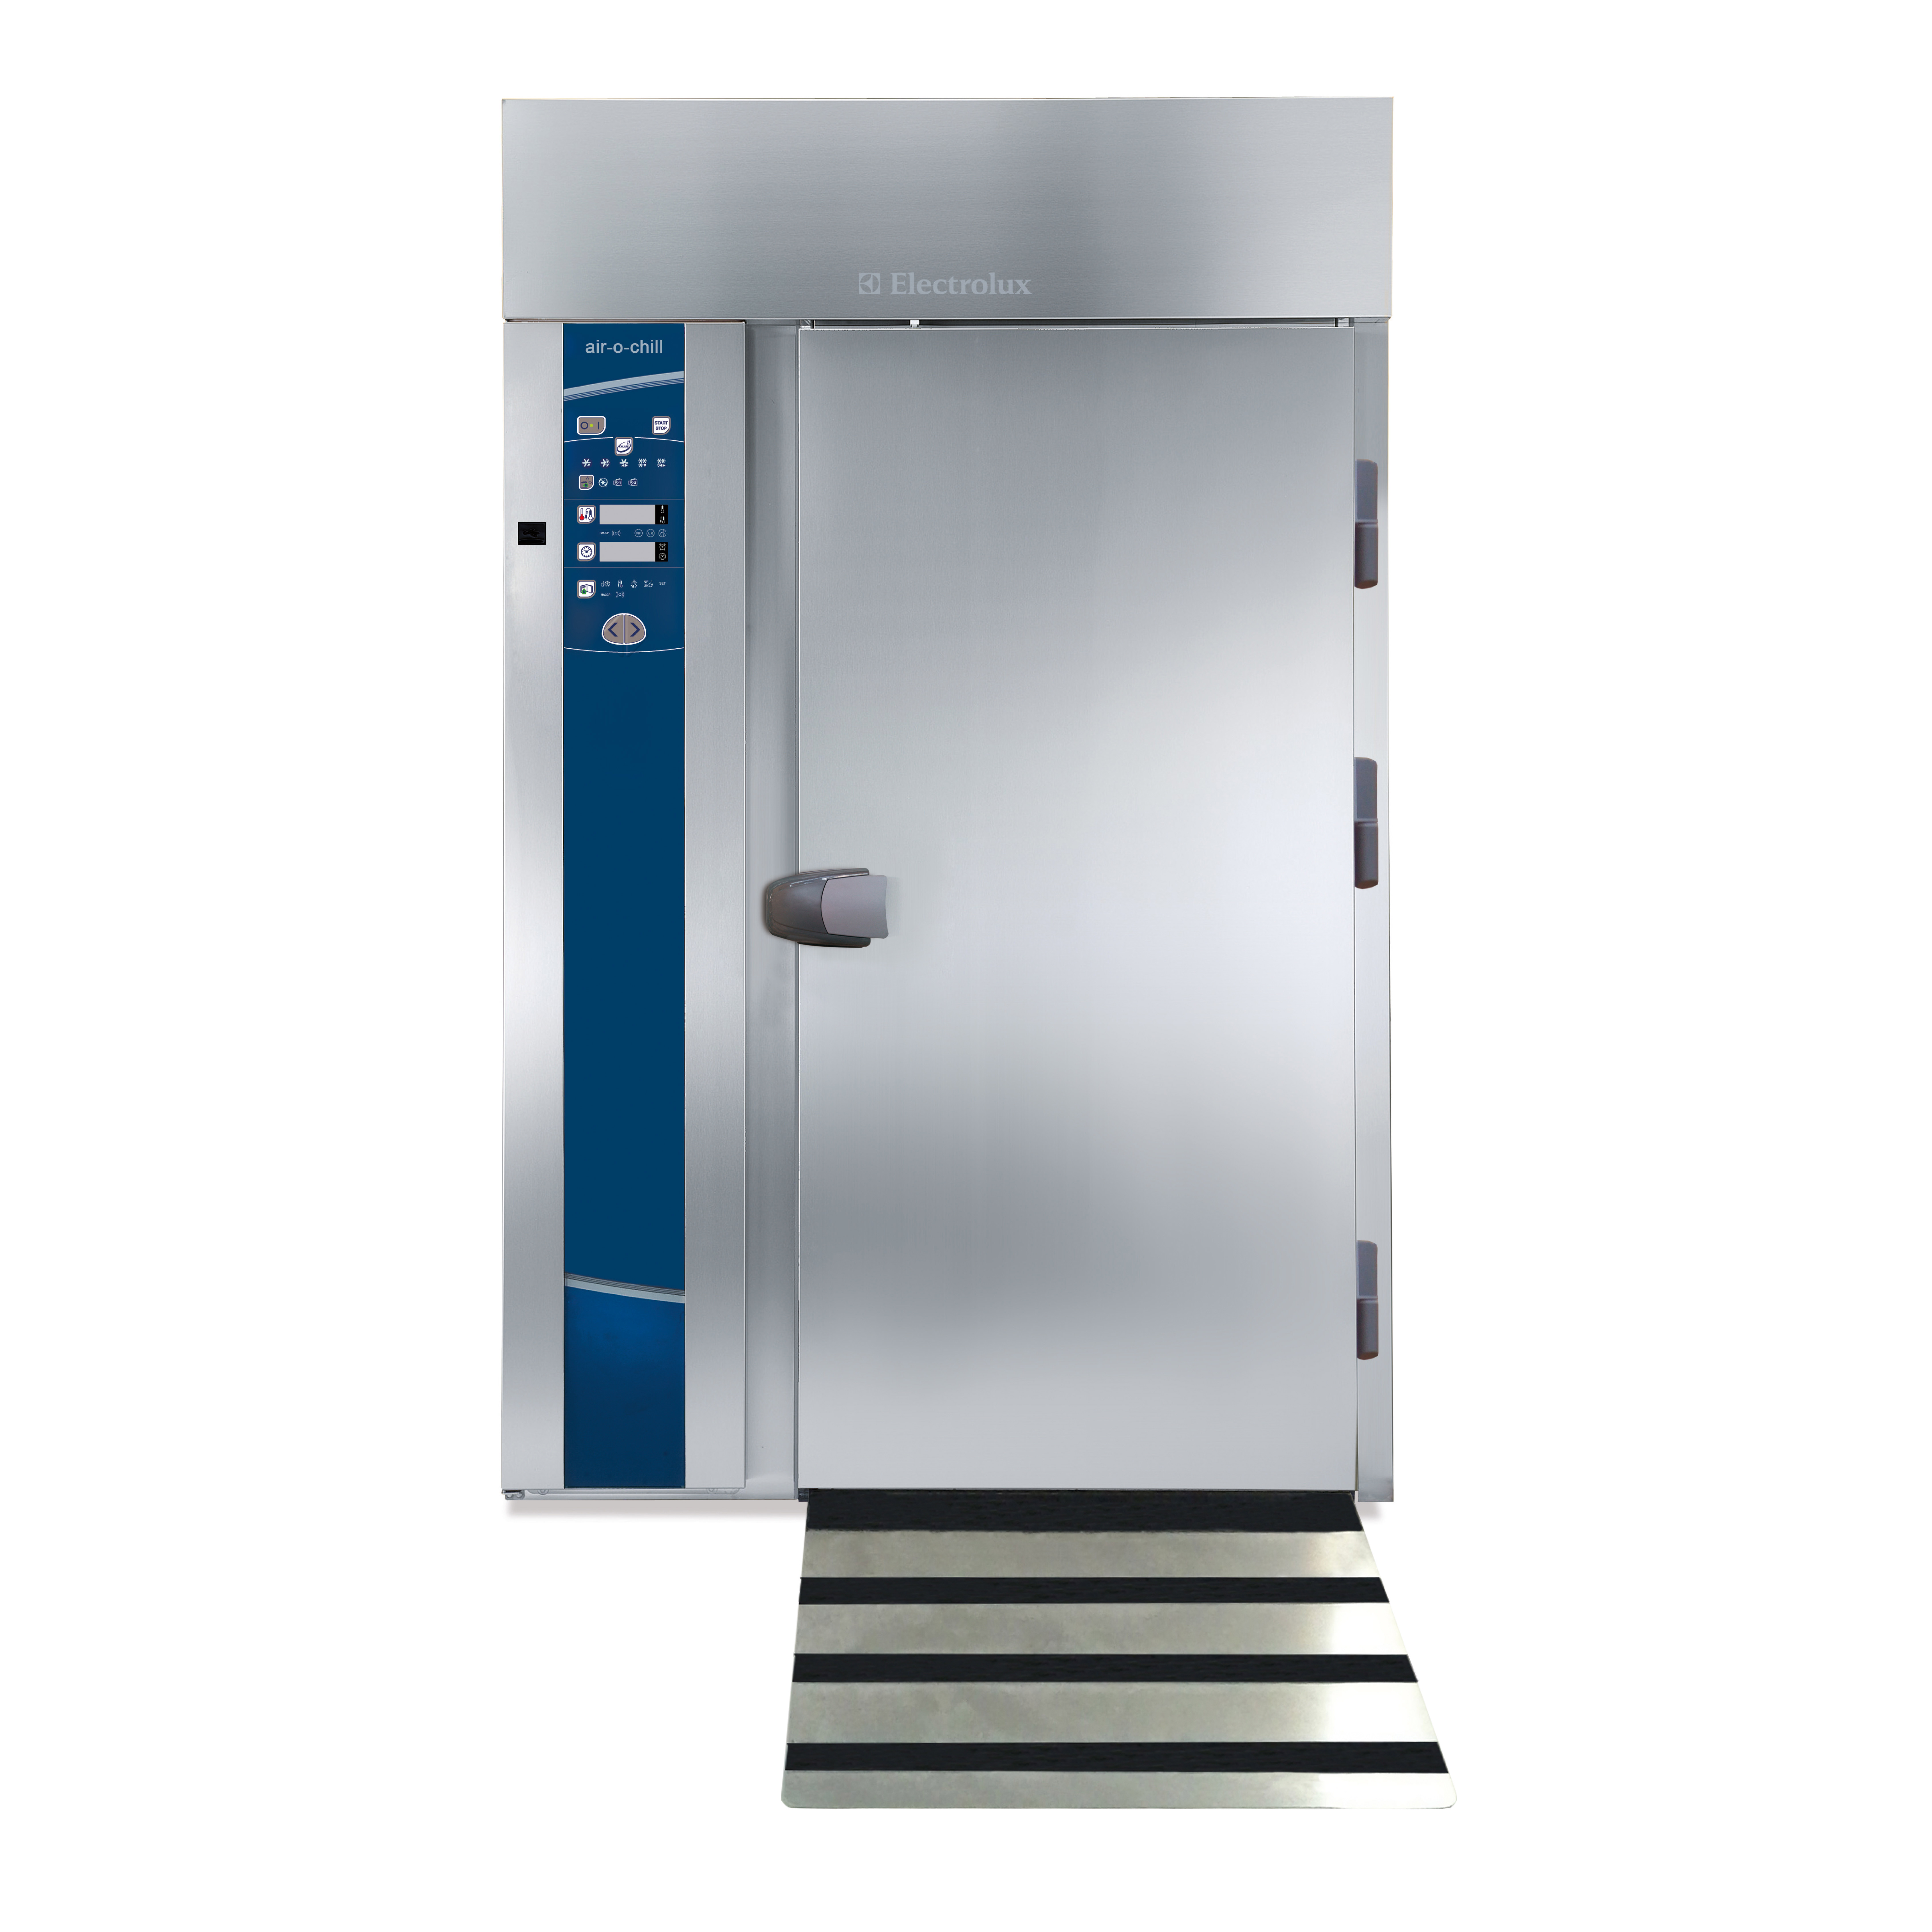 Electrolux Professional 727689 blast chiller freezer, roll-in